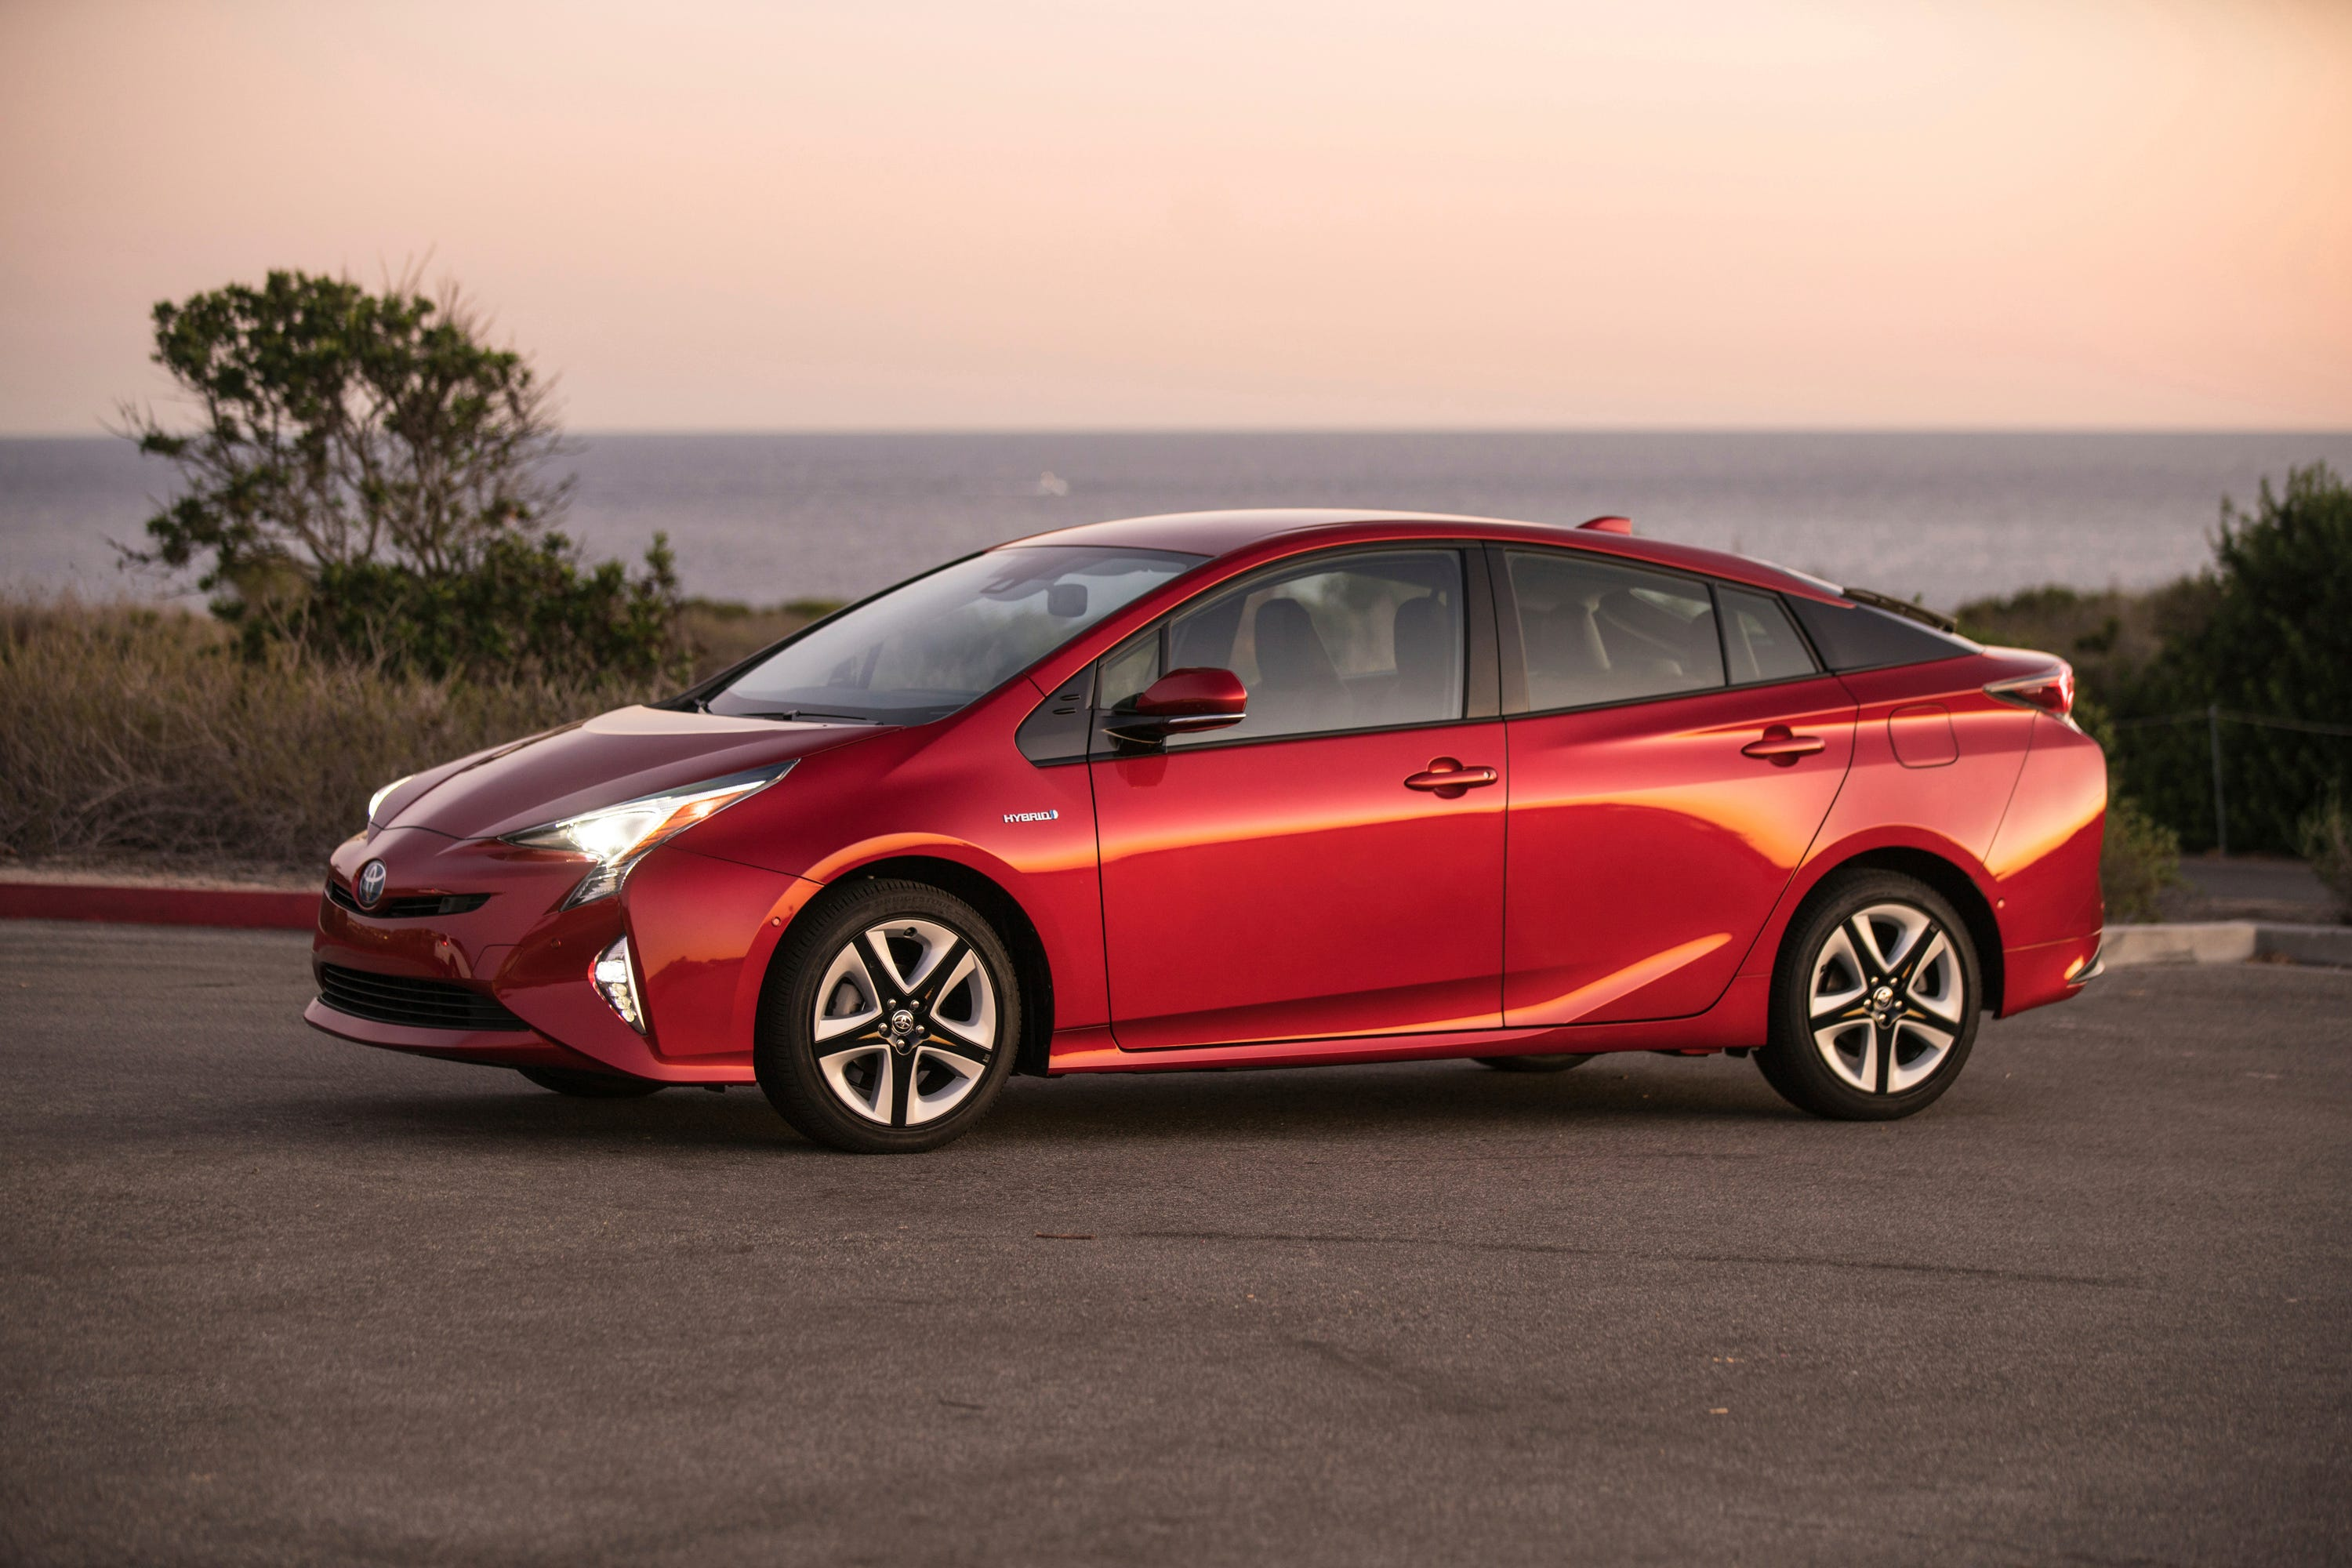 f0a866ee 8a64 44ac 8fac 80c0aa3157fc AP18233696282450?width=534&height=401&fit=bounds&auto=webp toyota recalls prius to fix defect that could trigger fires